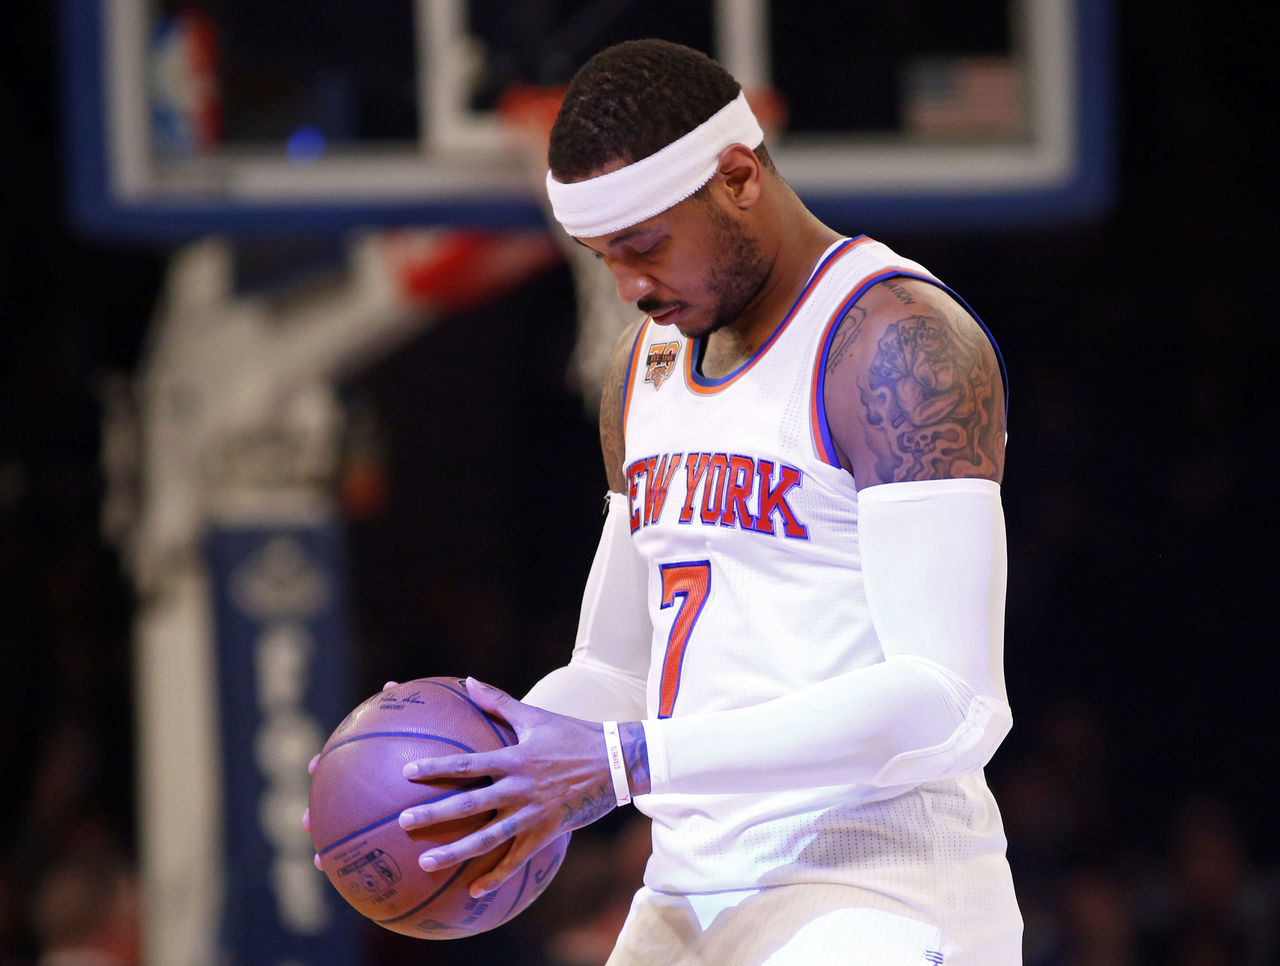 Cropped 2017 03 28t021409z 513154099 nocid rtrmadp 3 nba detroit pistons at new york knicks